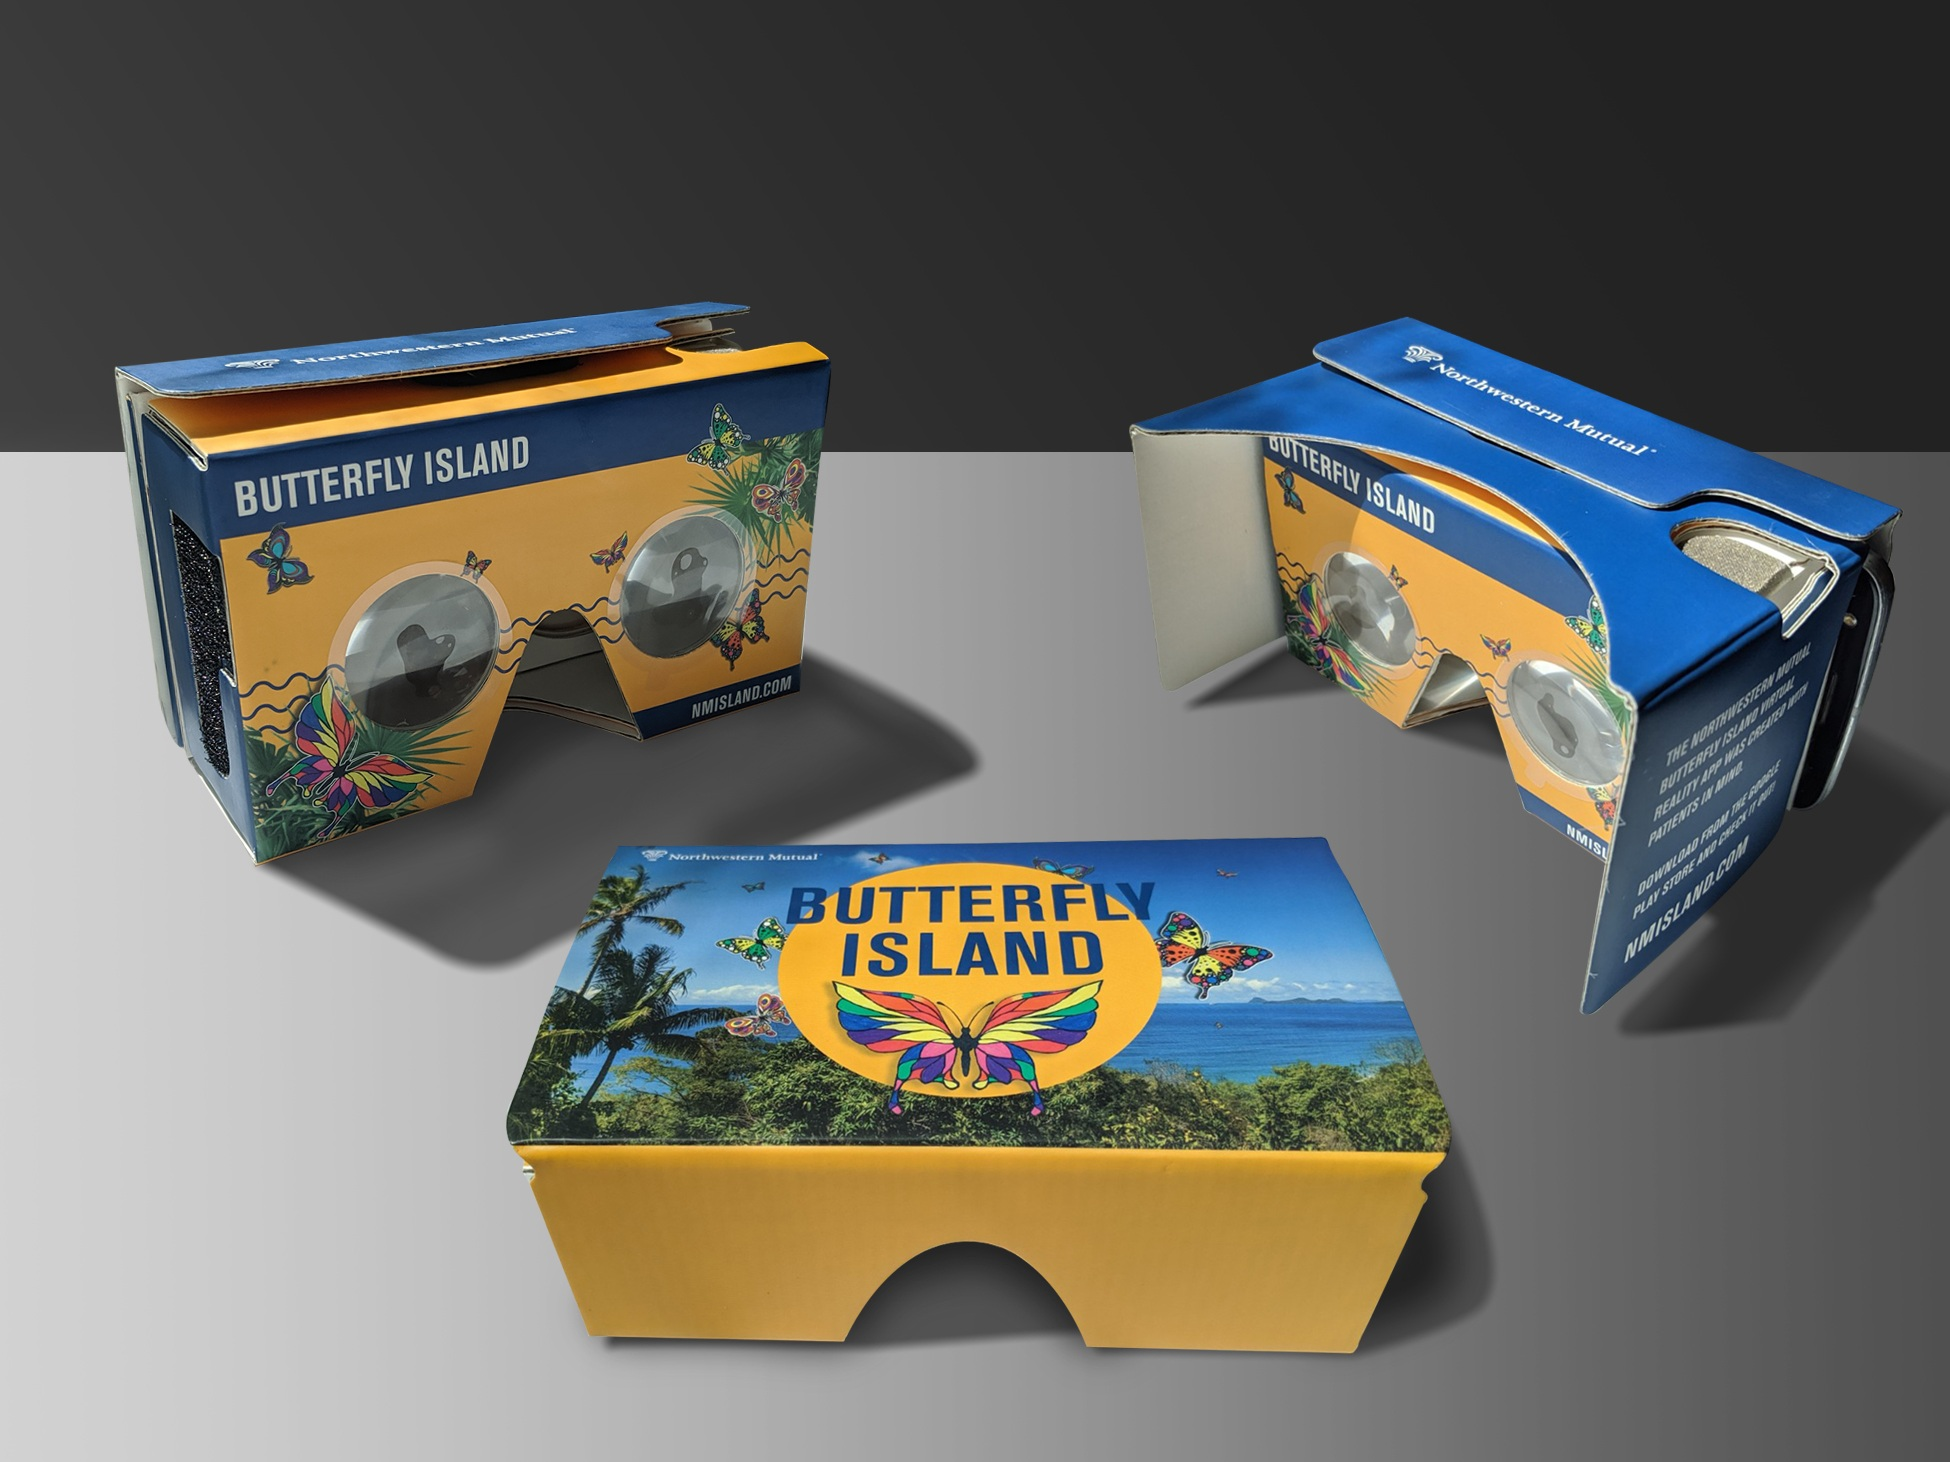 3-D viewer for the Butterfly Island app developed for the Northwestern Mutual Foundation